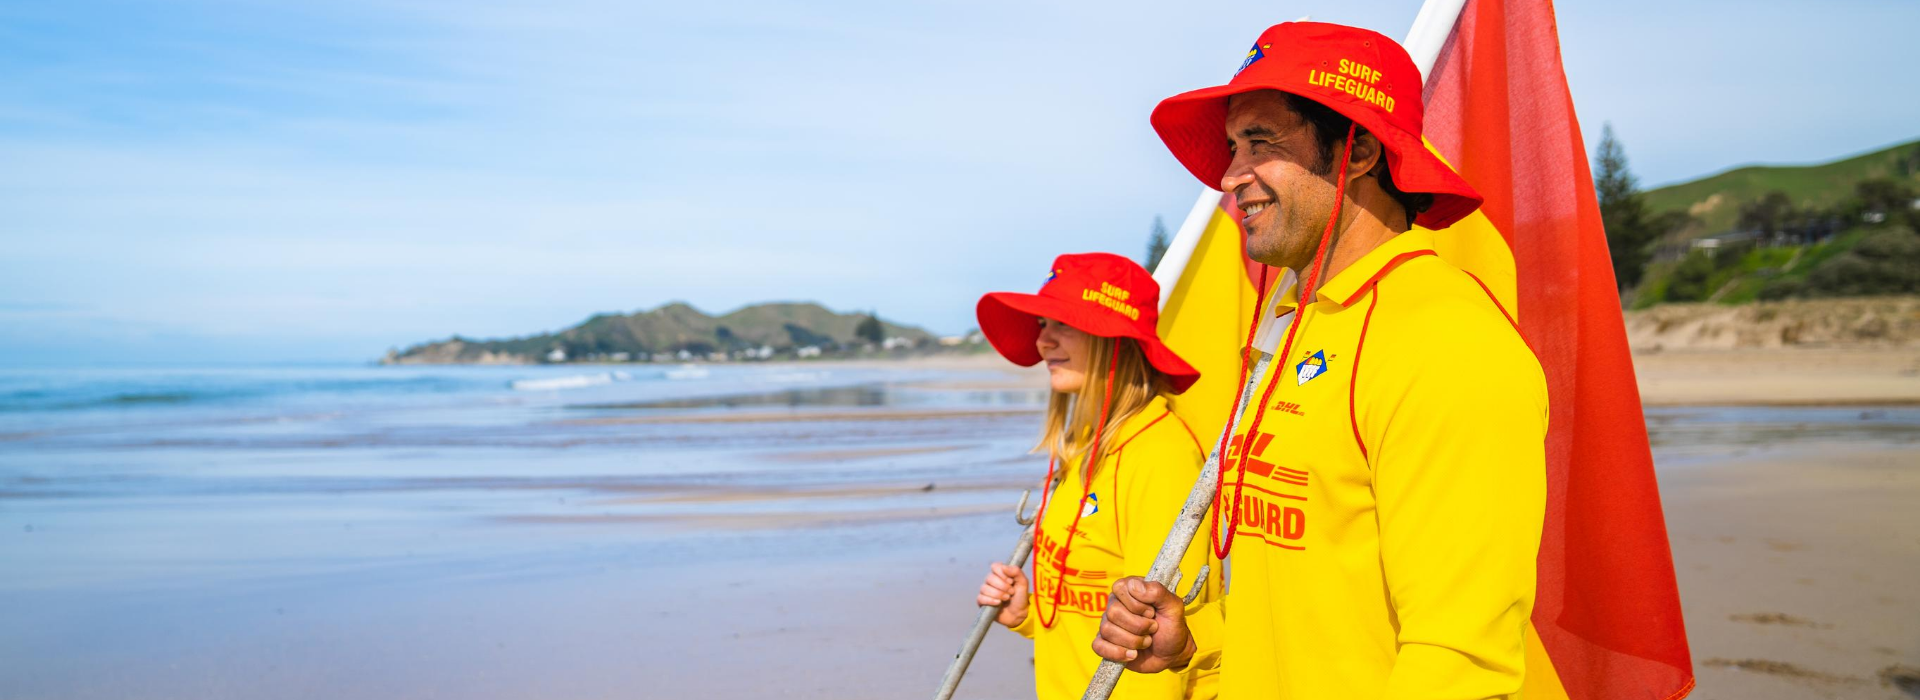 Female and male lifeguards with flags staring into distance side shot